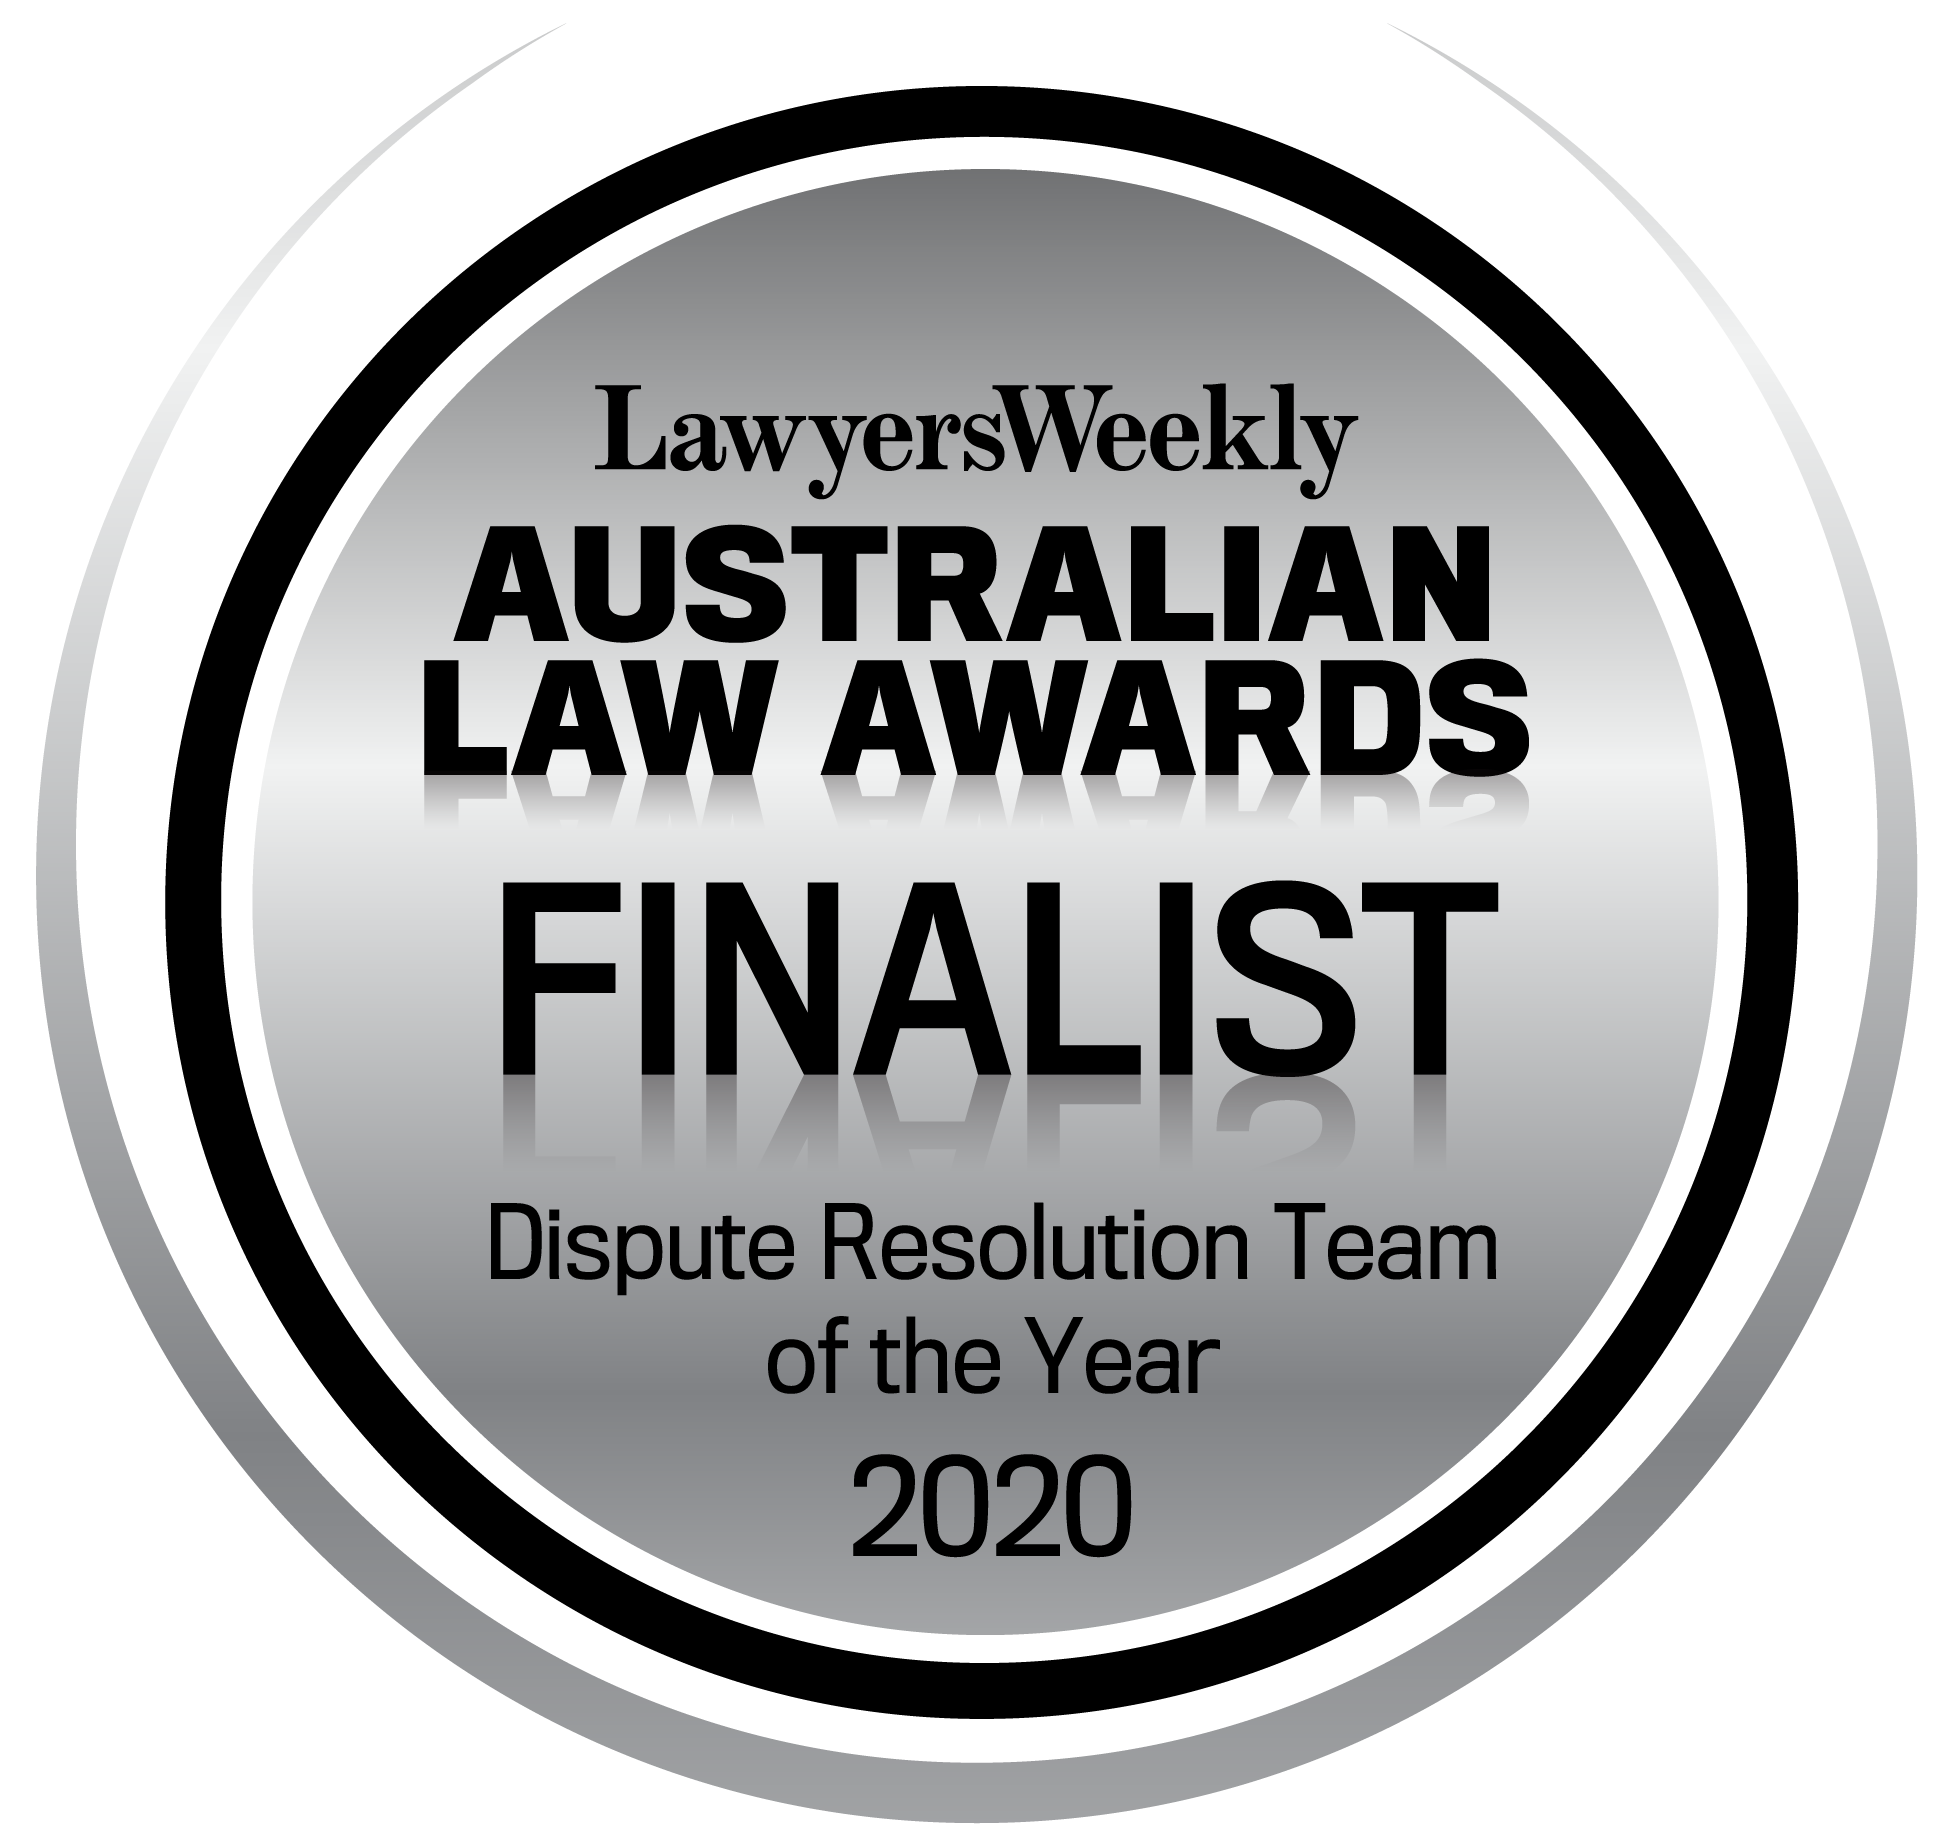 ALA_2020_Finalist_Dispute Resolution Team of the Year